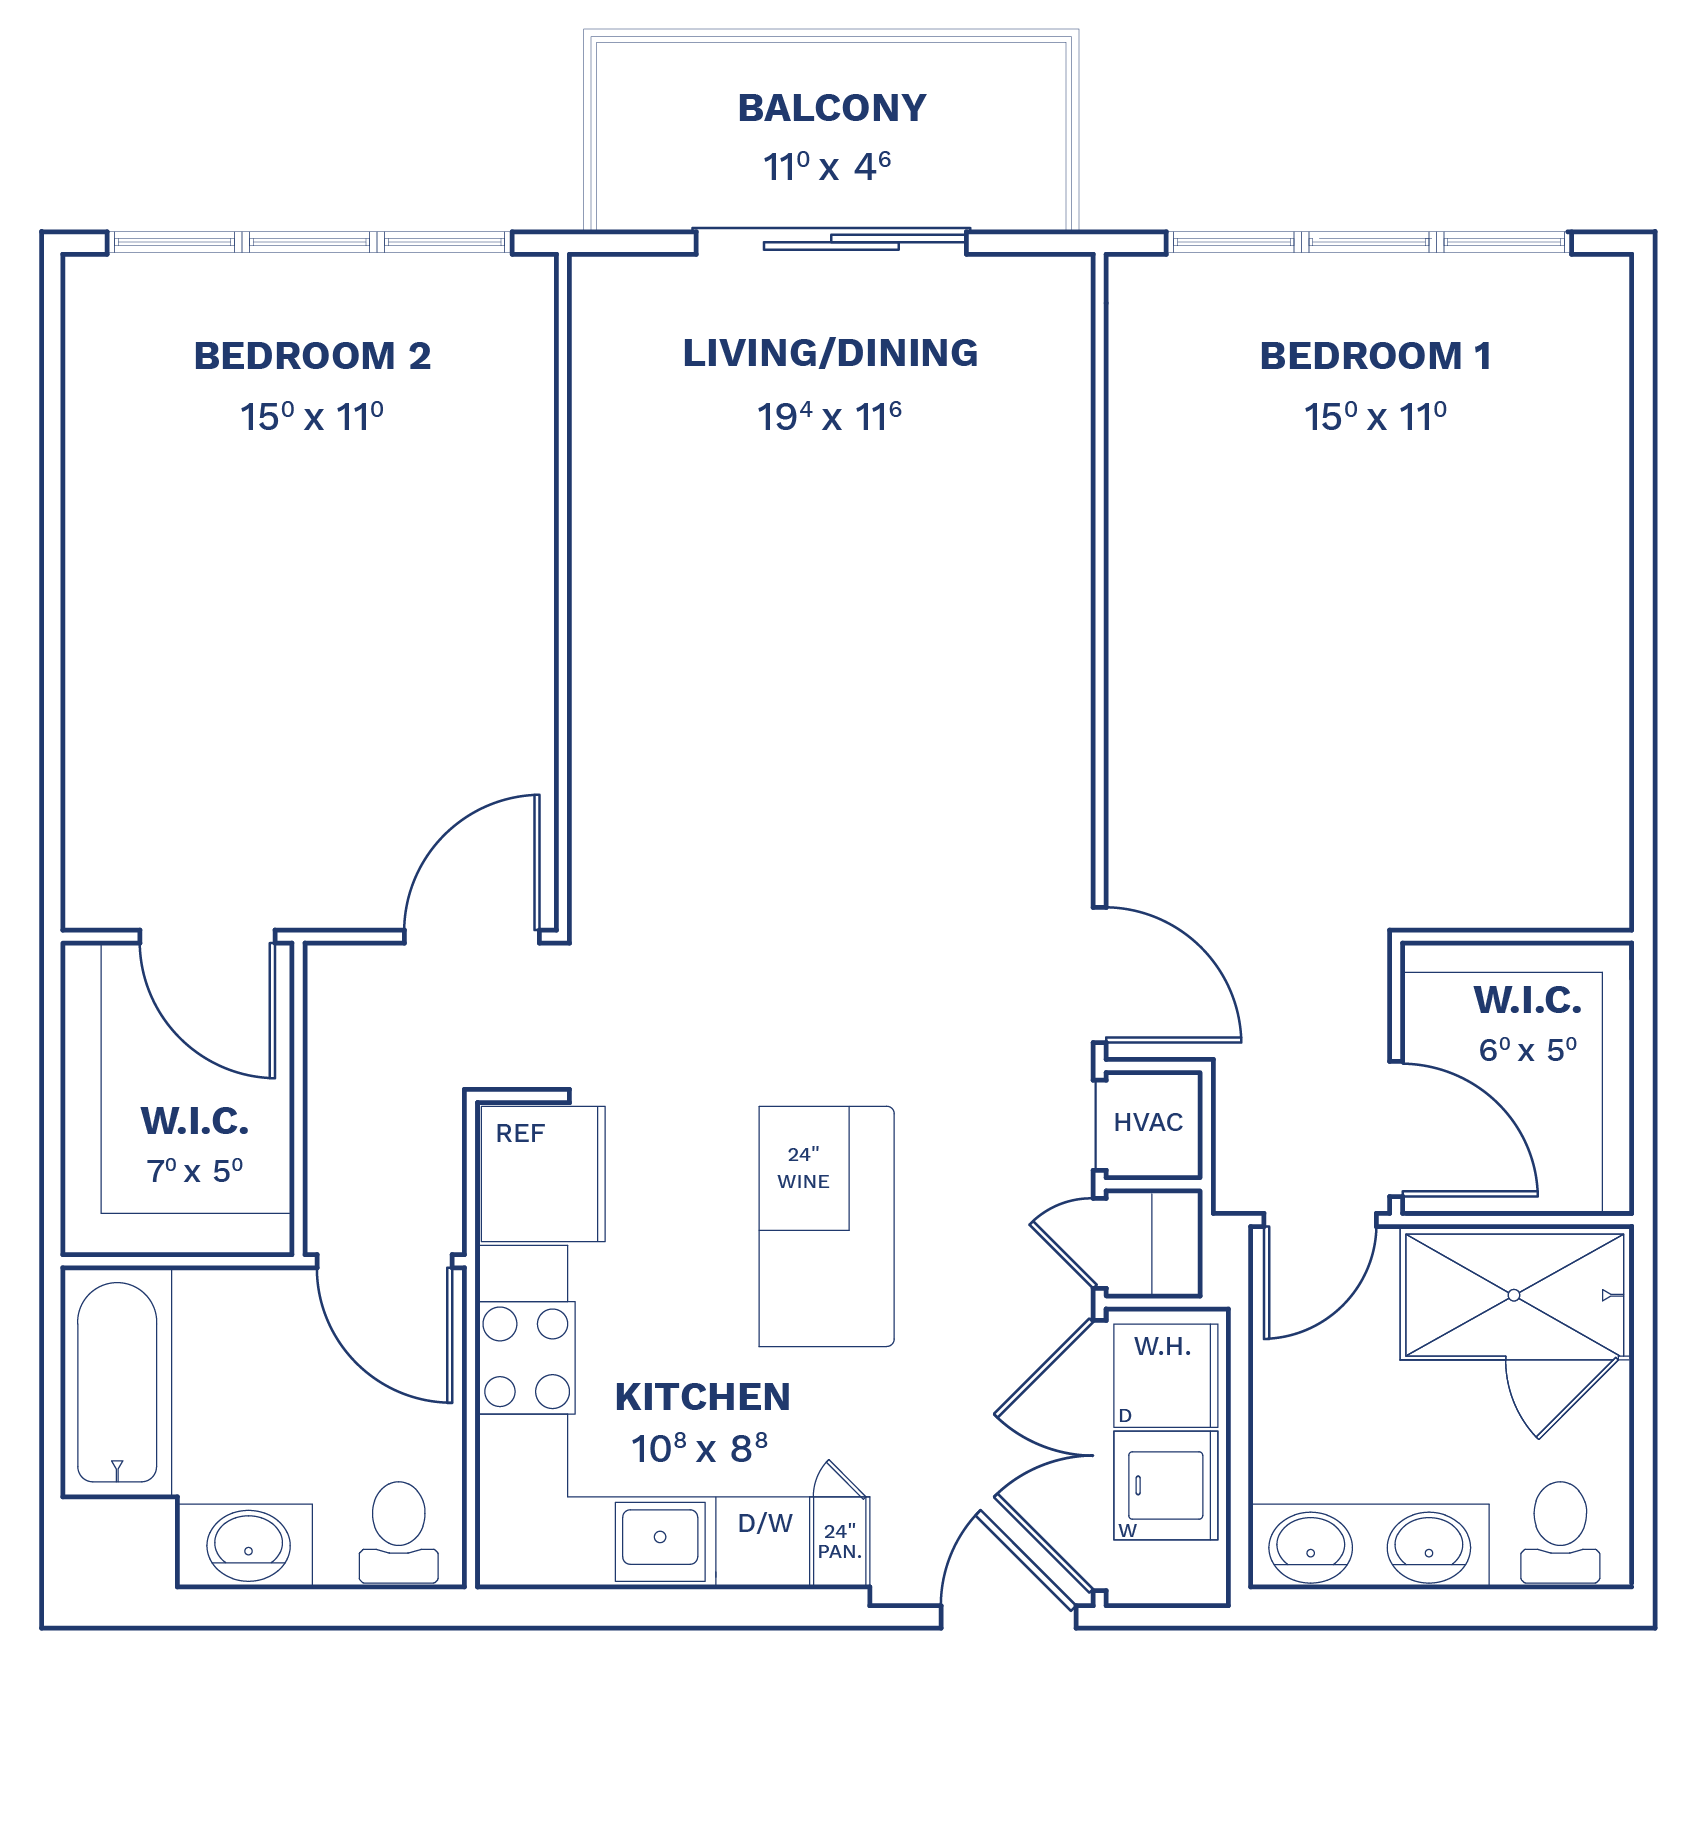 Floorplan of Unit B2.1